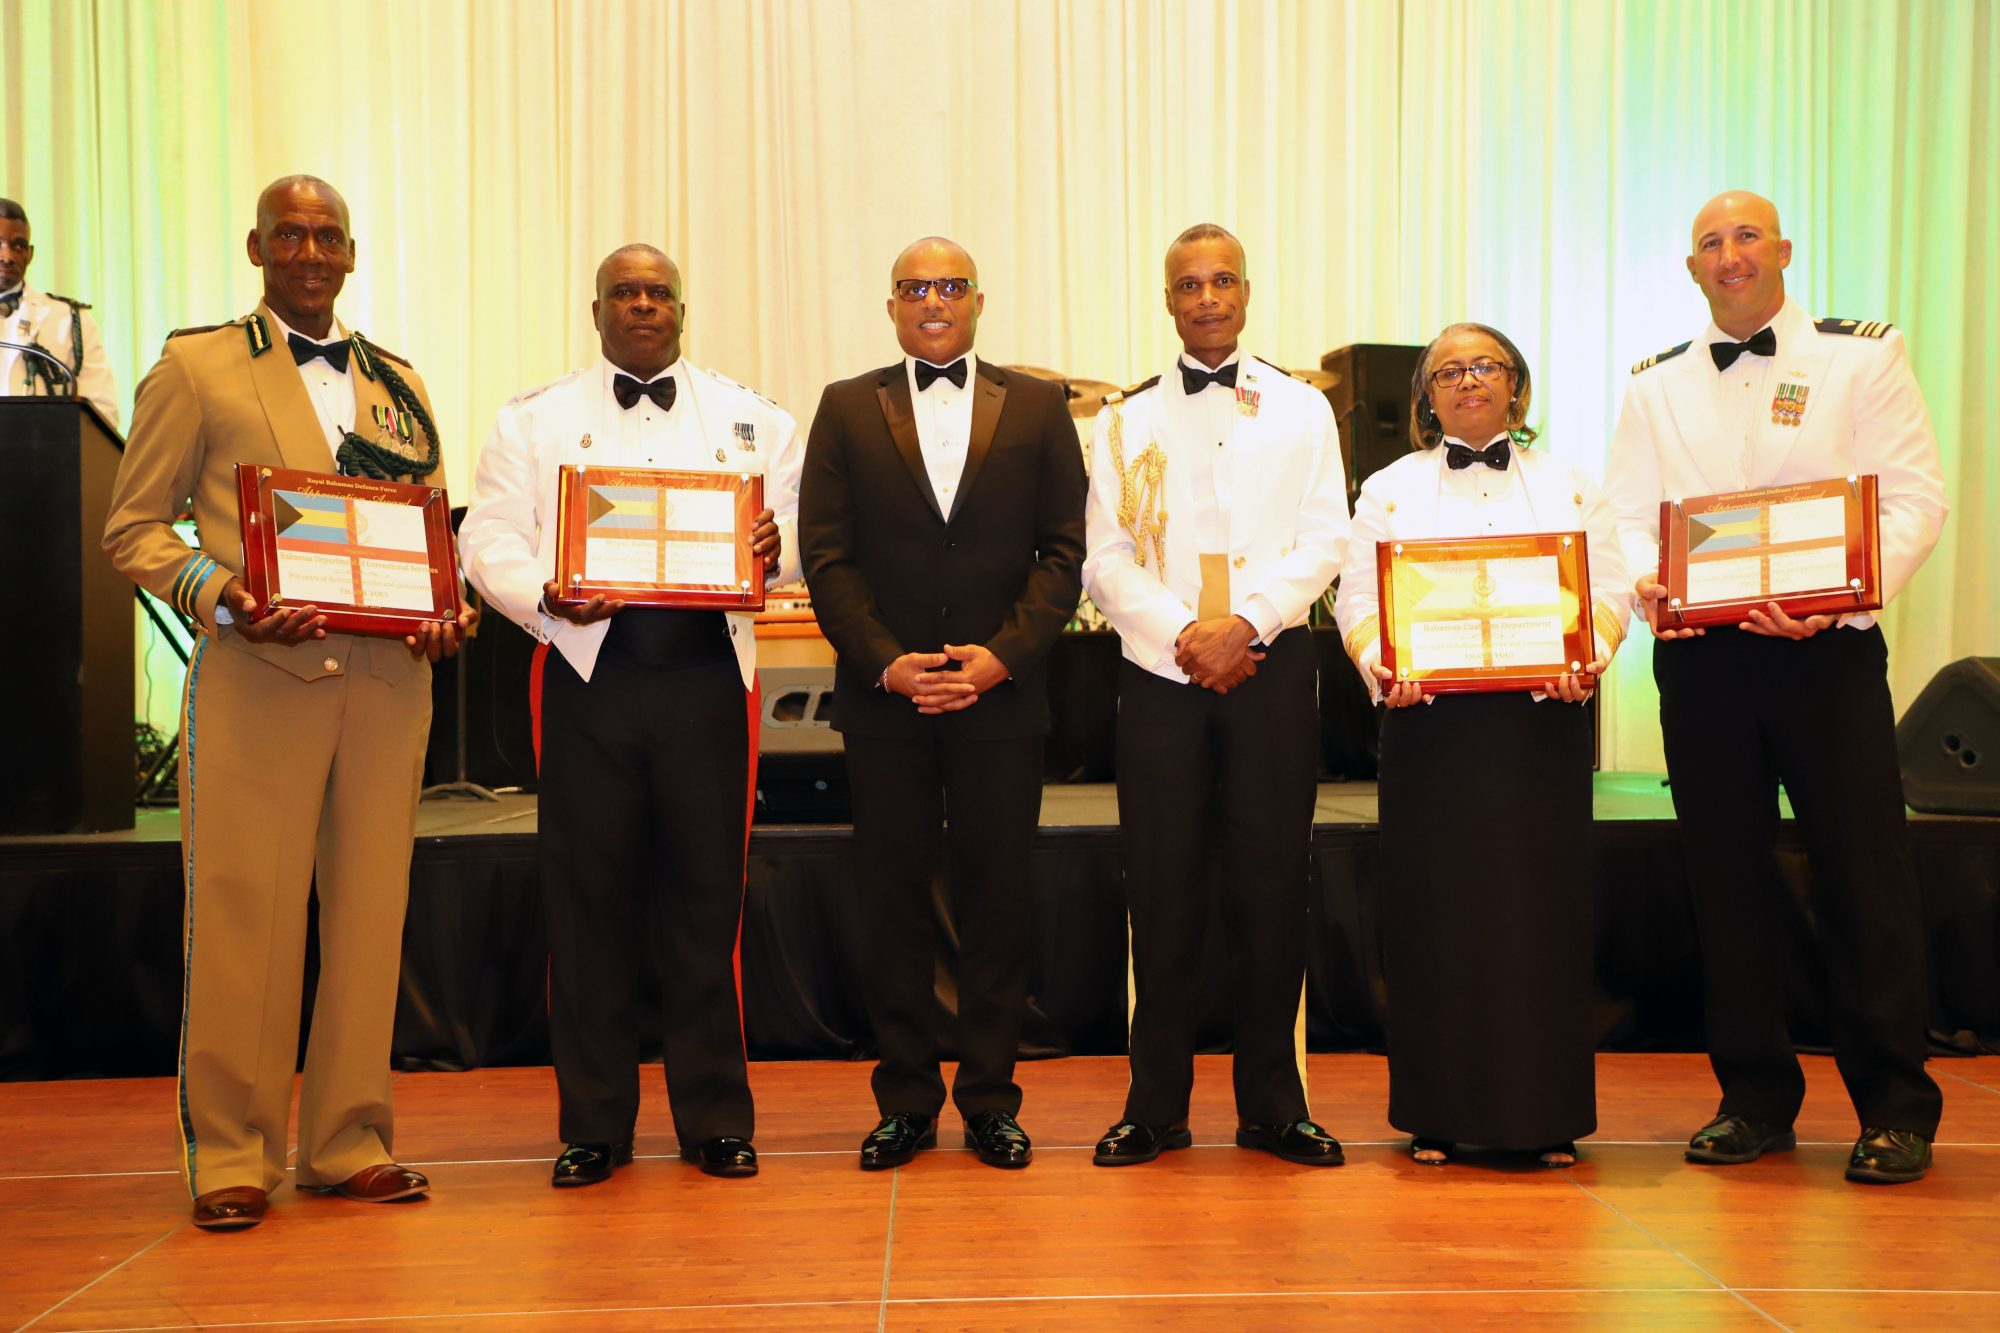 Partnering agencies receiving a token of appreciation from the Defence Force. From left: Bahamas Department of Correctional Services Commissioner Charles Murphy; Commissioner of Police Anthony Ferguson; the Minister of National Security the Honourable Marvin Dames; Commander Defence Force Commodore Tellis Bethel; Comptroller of Customs Dr. Geannine Moss and Lieutenant Commander Justin Matejka.